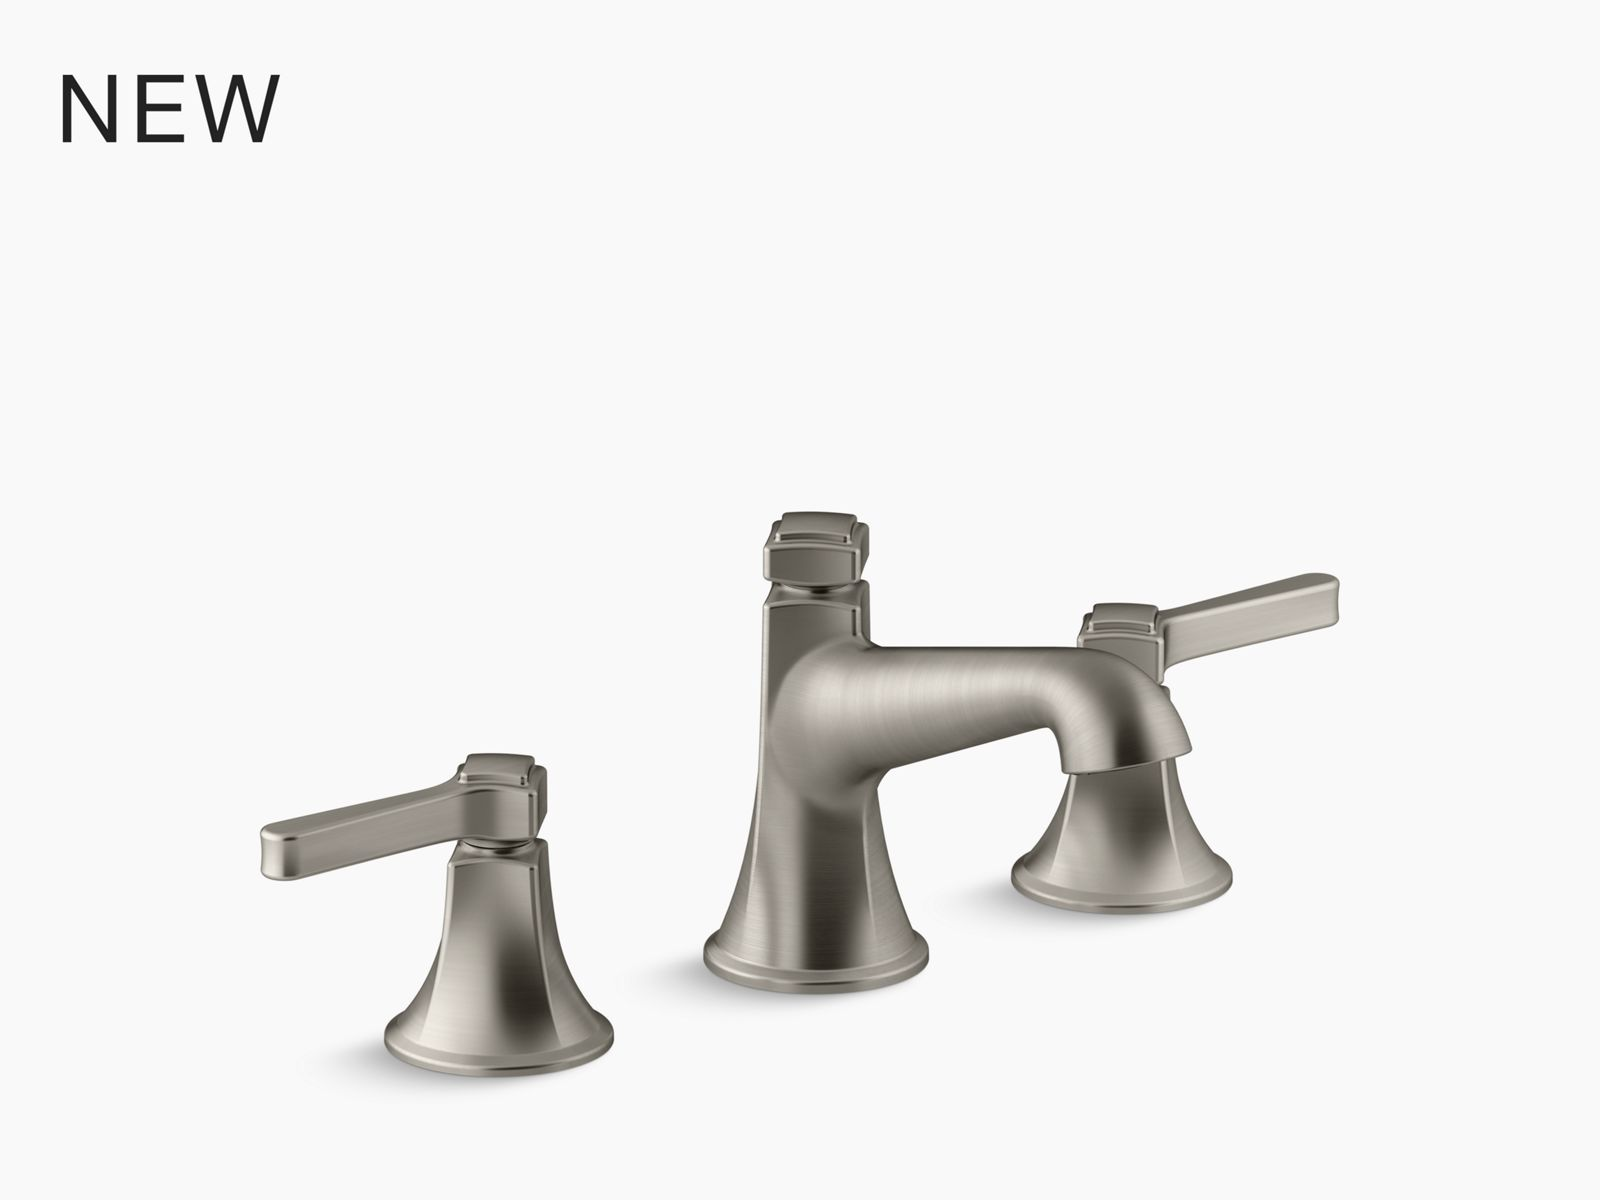 fairfax widespread bathroom sink faucet with lever handles